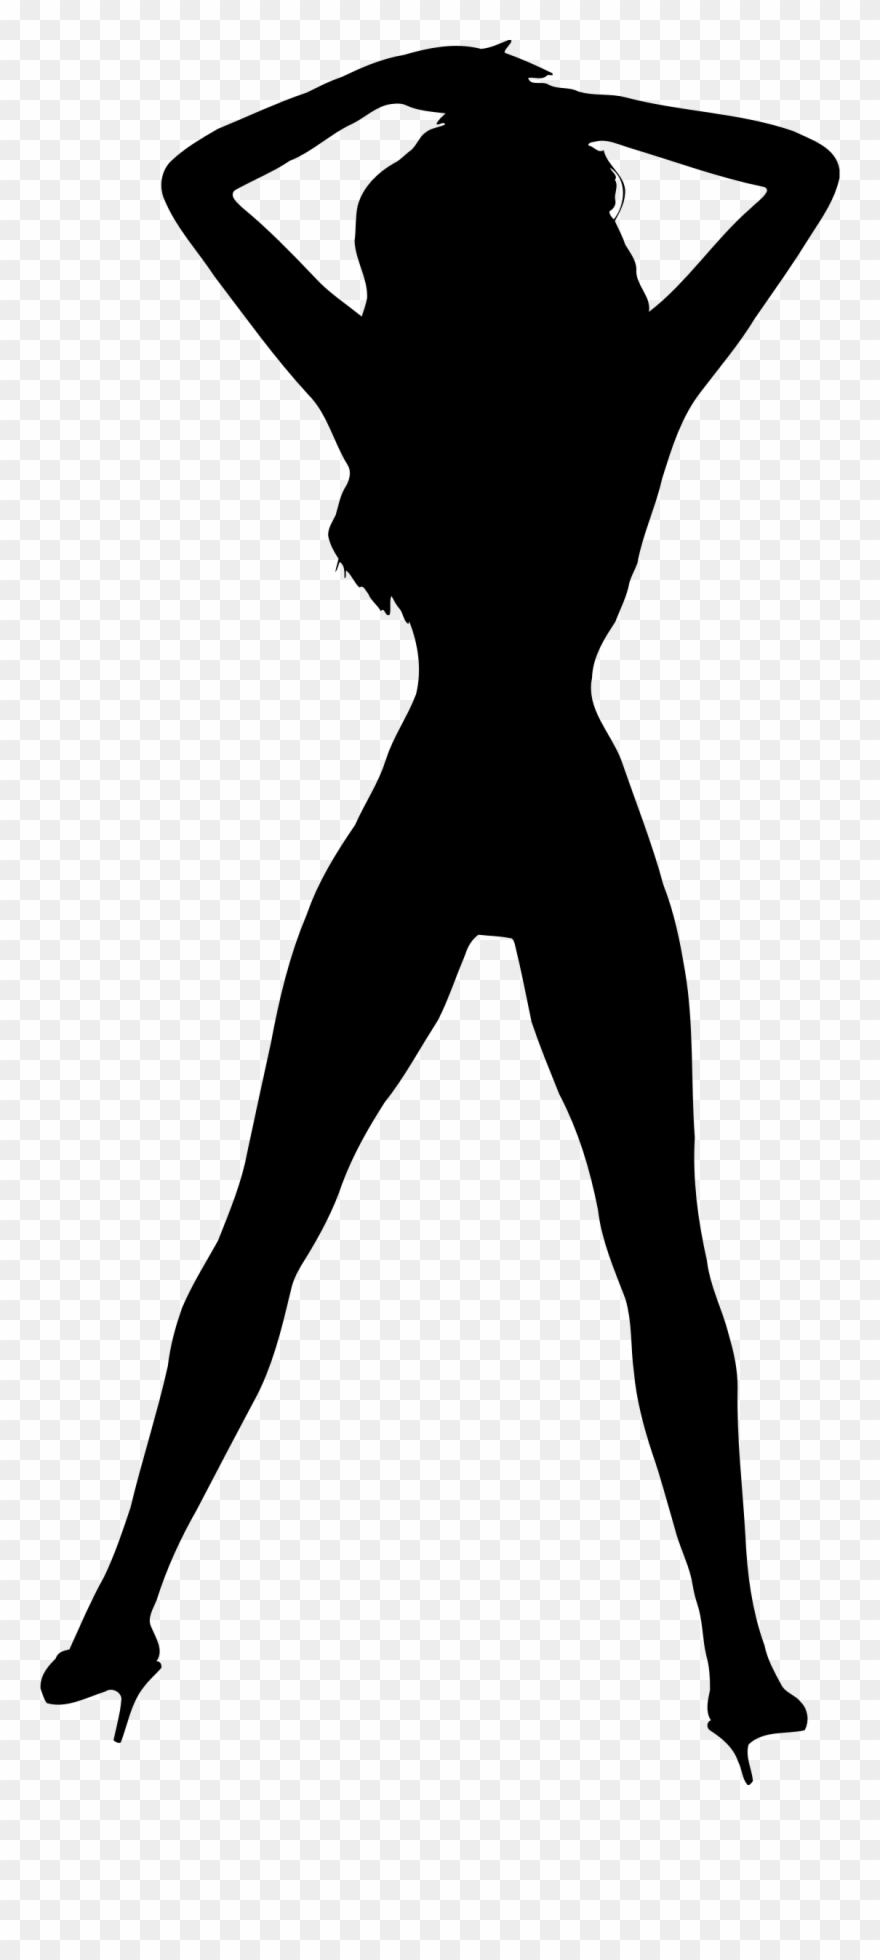 Women Silhouettes Vector Free Download.